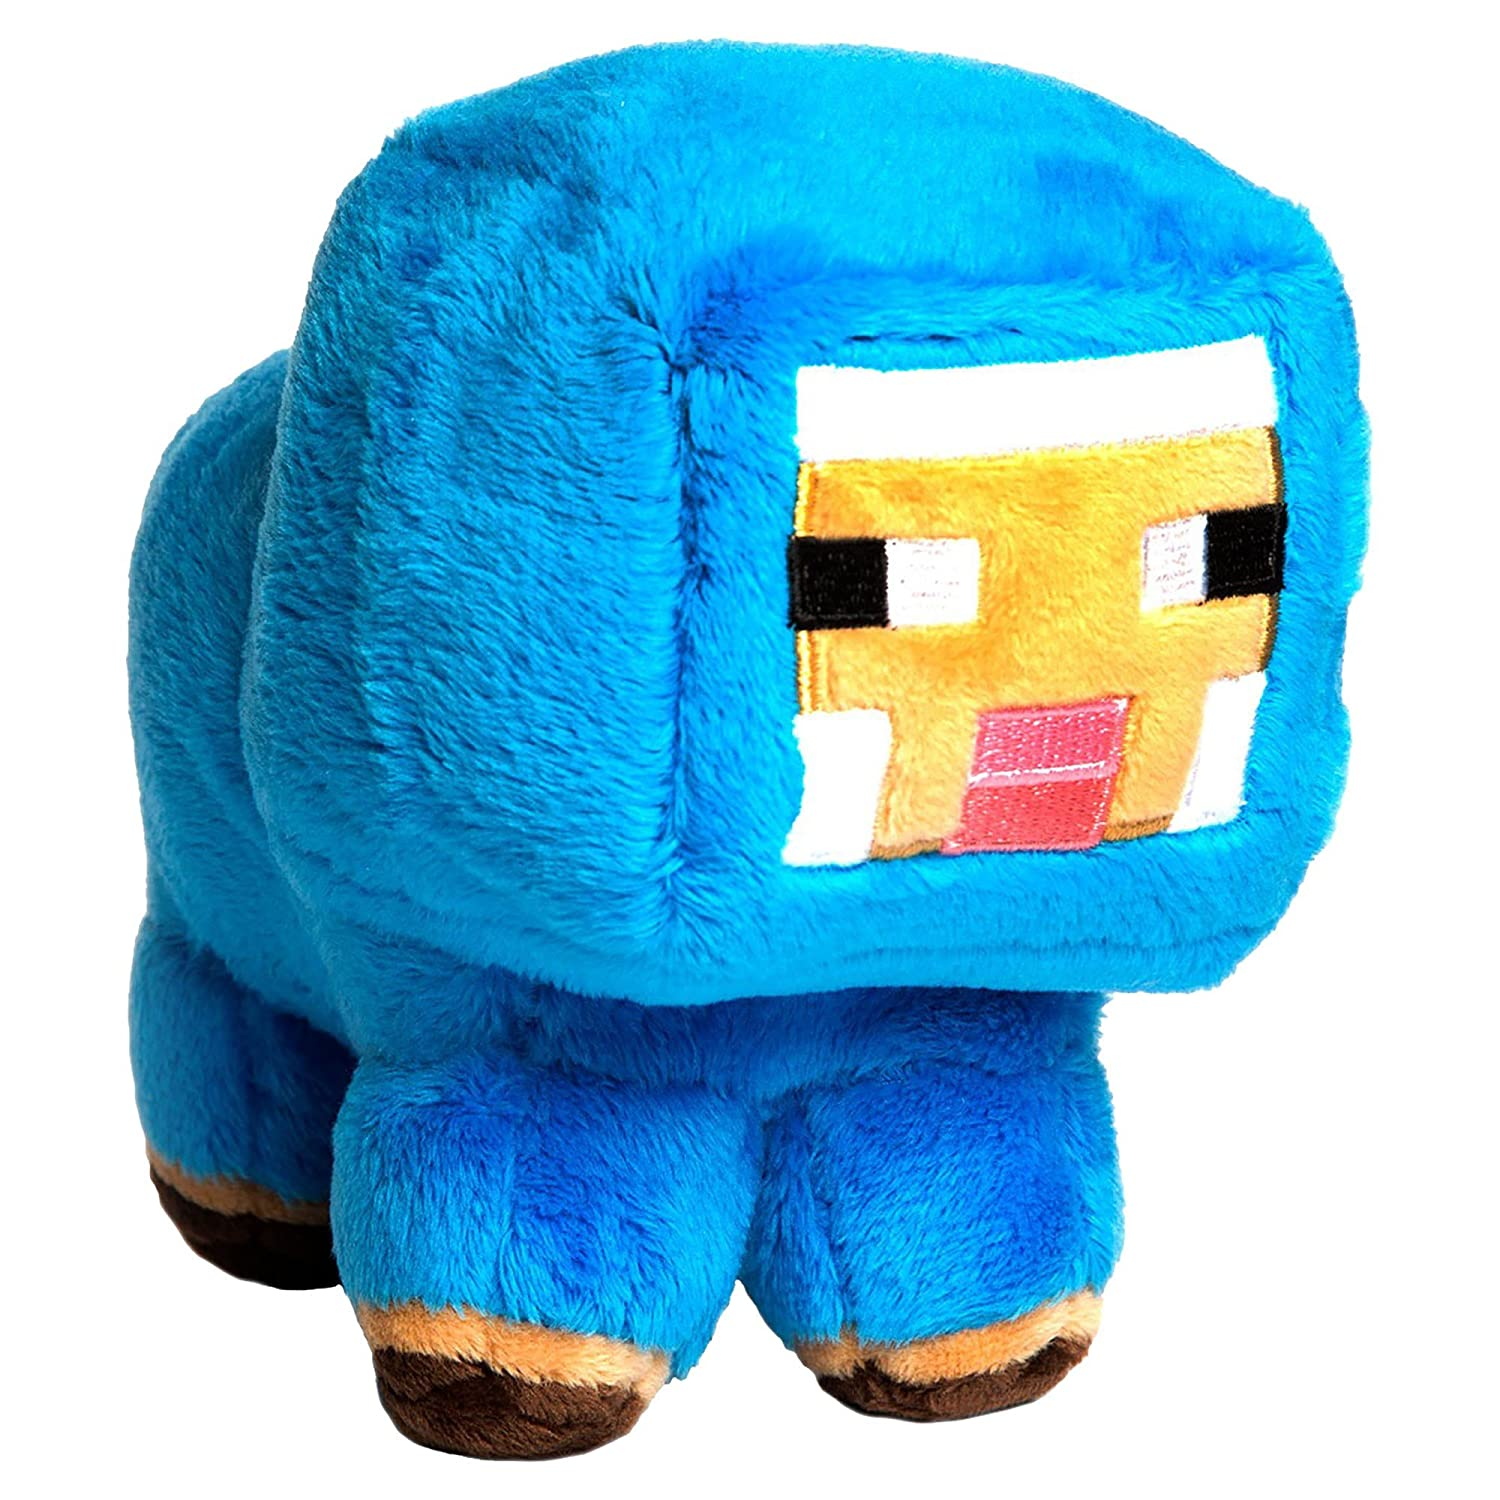 JINX Minecraft Blue Baby Sheep Plush Stuffed Toy (Blue, 7 Tall) 7 Tall) 7184